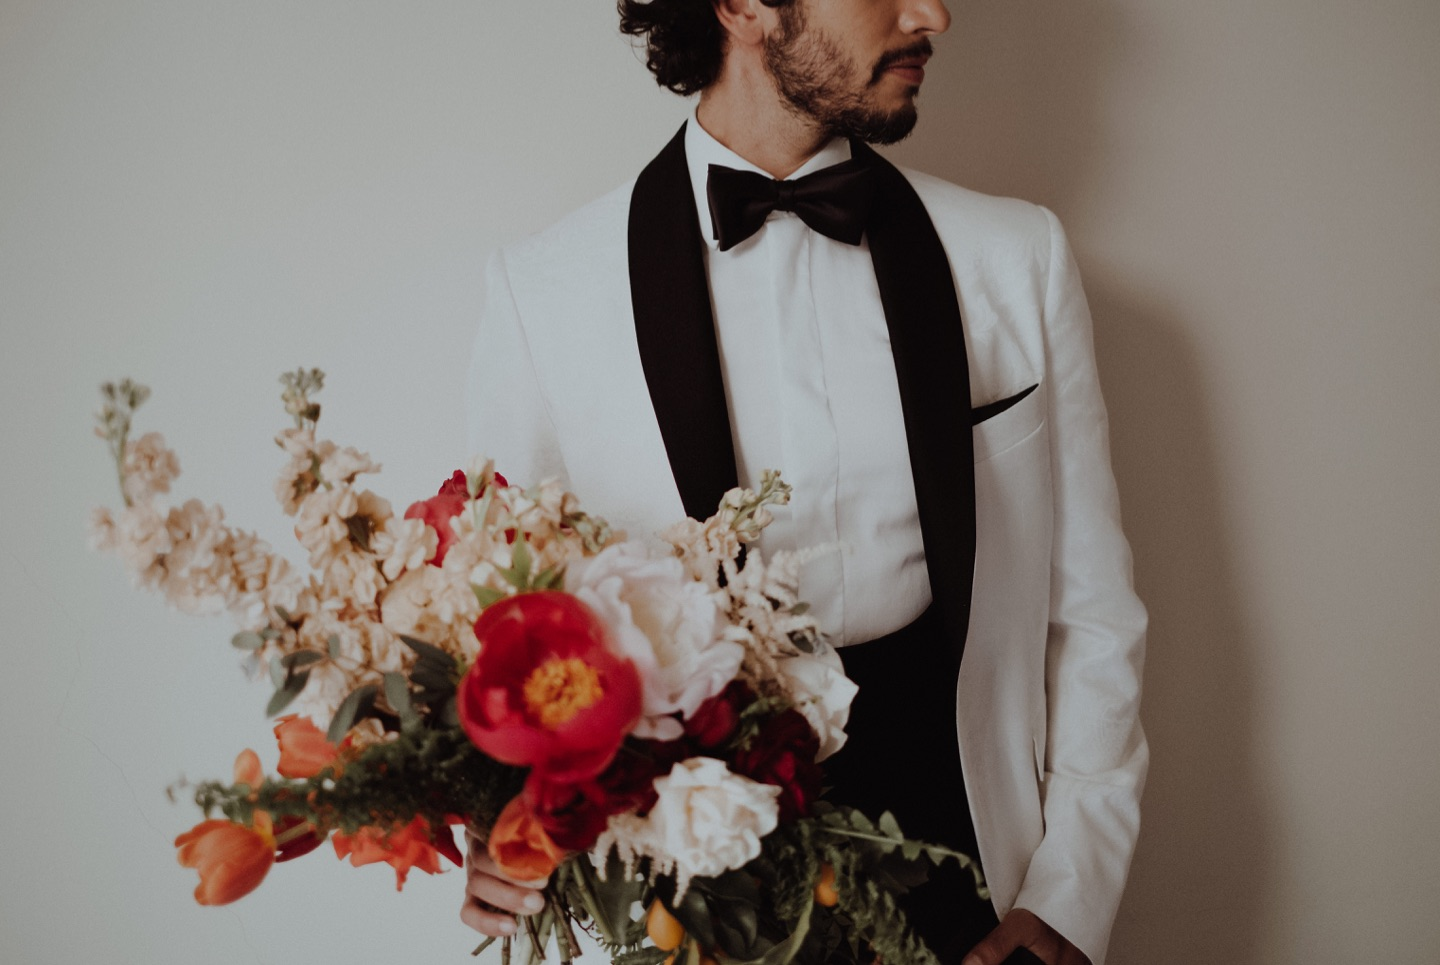 the groom and the bouquet